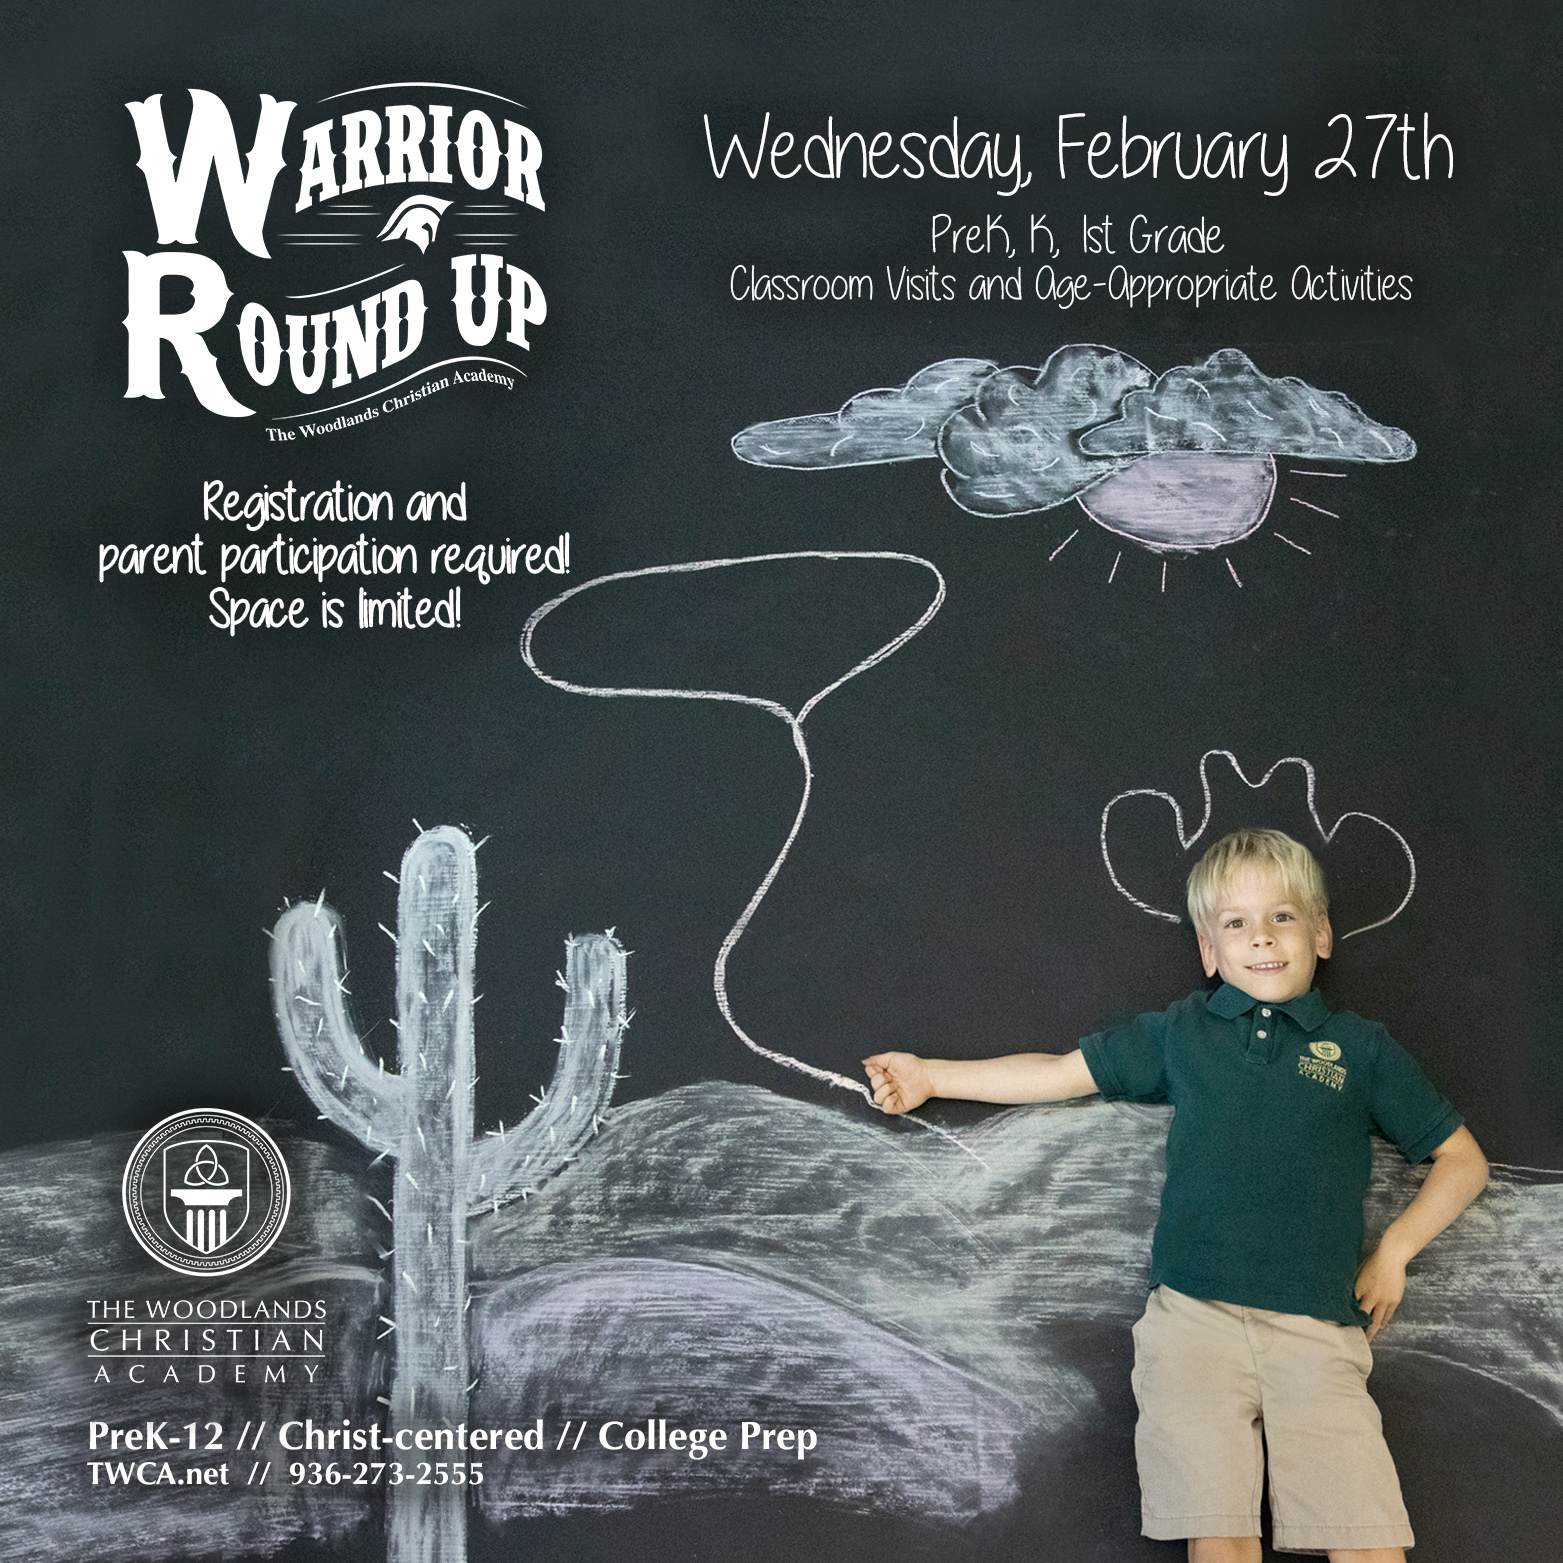 Warrior Round Up